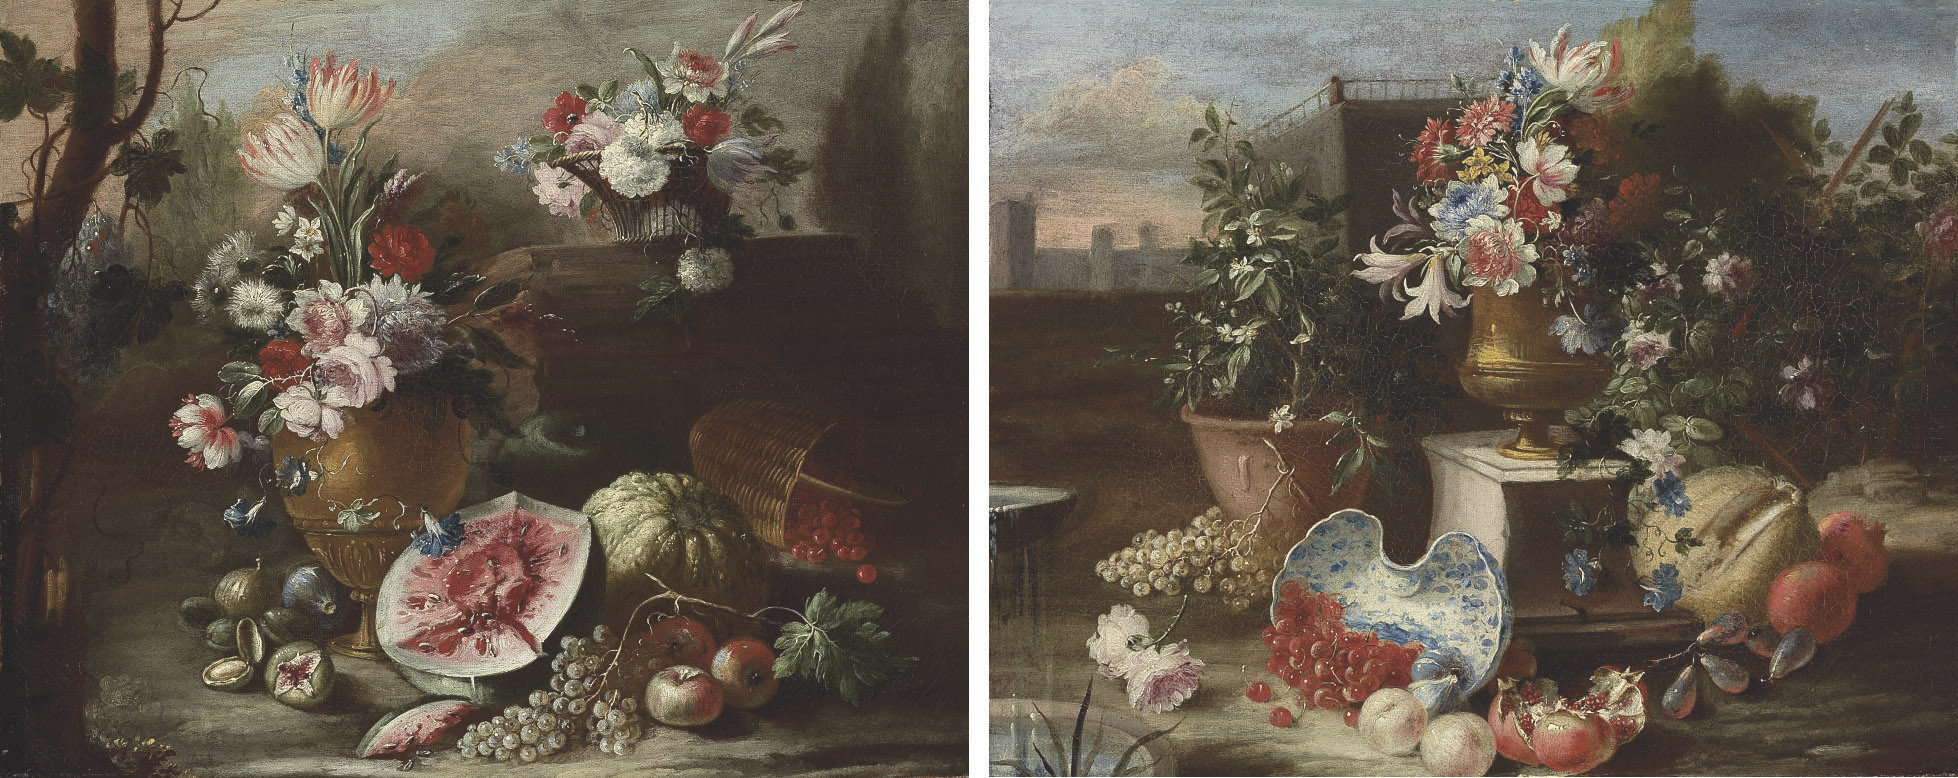 Tulips, roses, figs, grapes, a melon and cherries, with other flowers and fruit, in a landscape; and Tulips, roses, lilies, figs, cherries, grapes and pomegranate, by a fountain